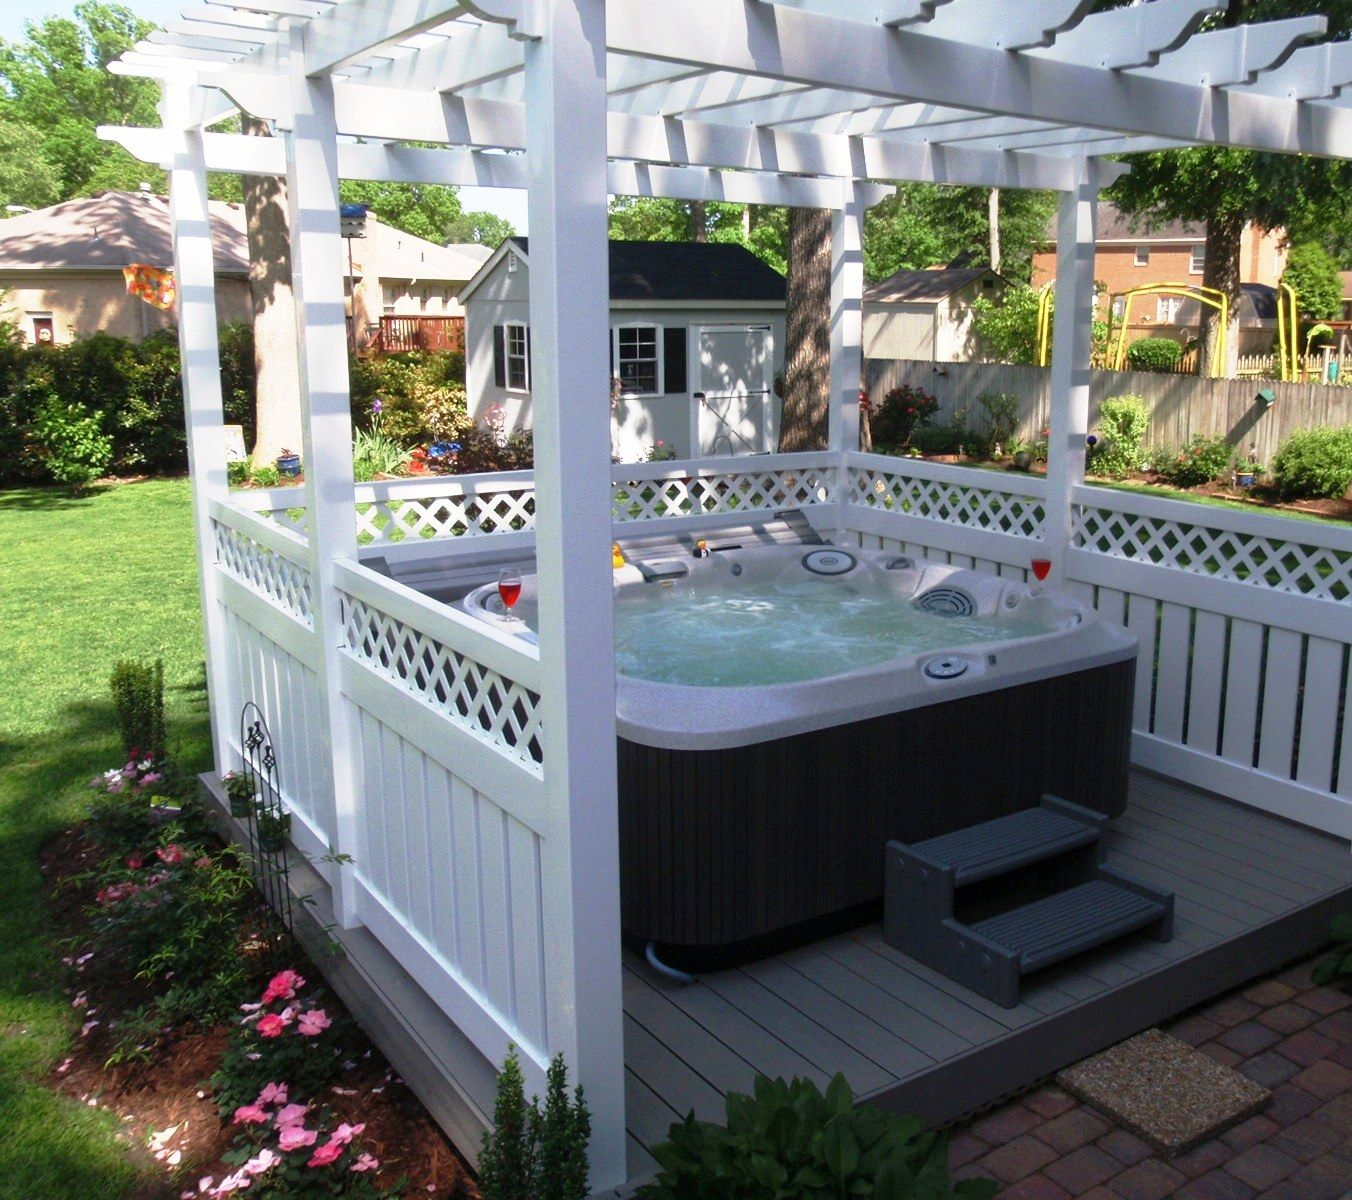 hotels hotel hot balcony oceanfront beach tubs the virginia tub top va view articles at